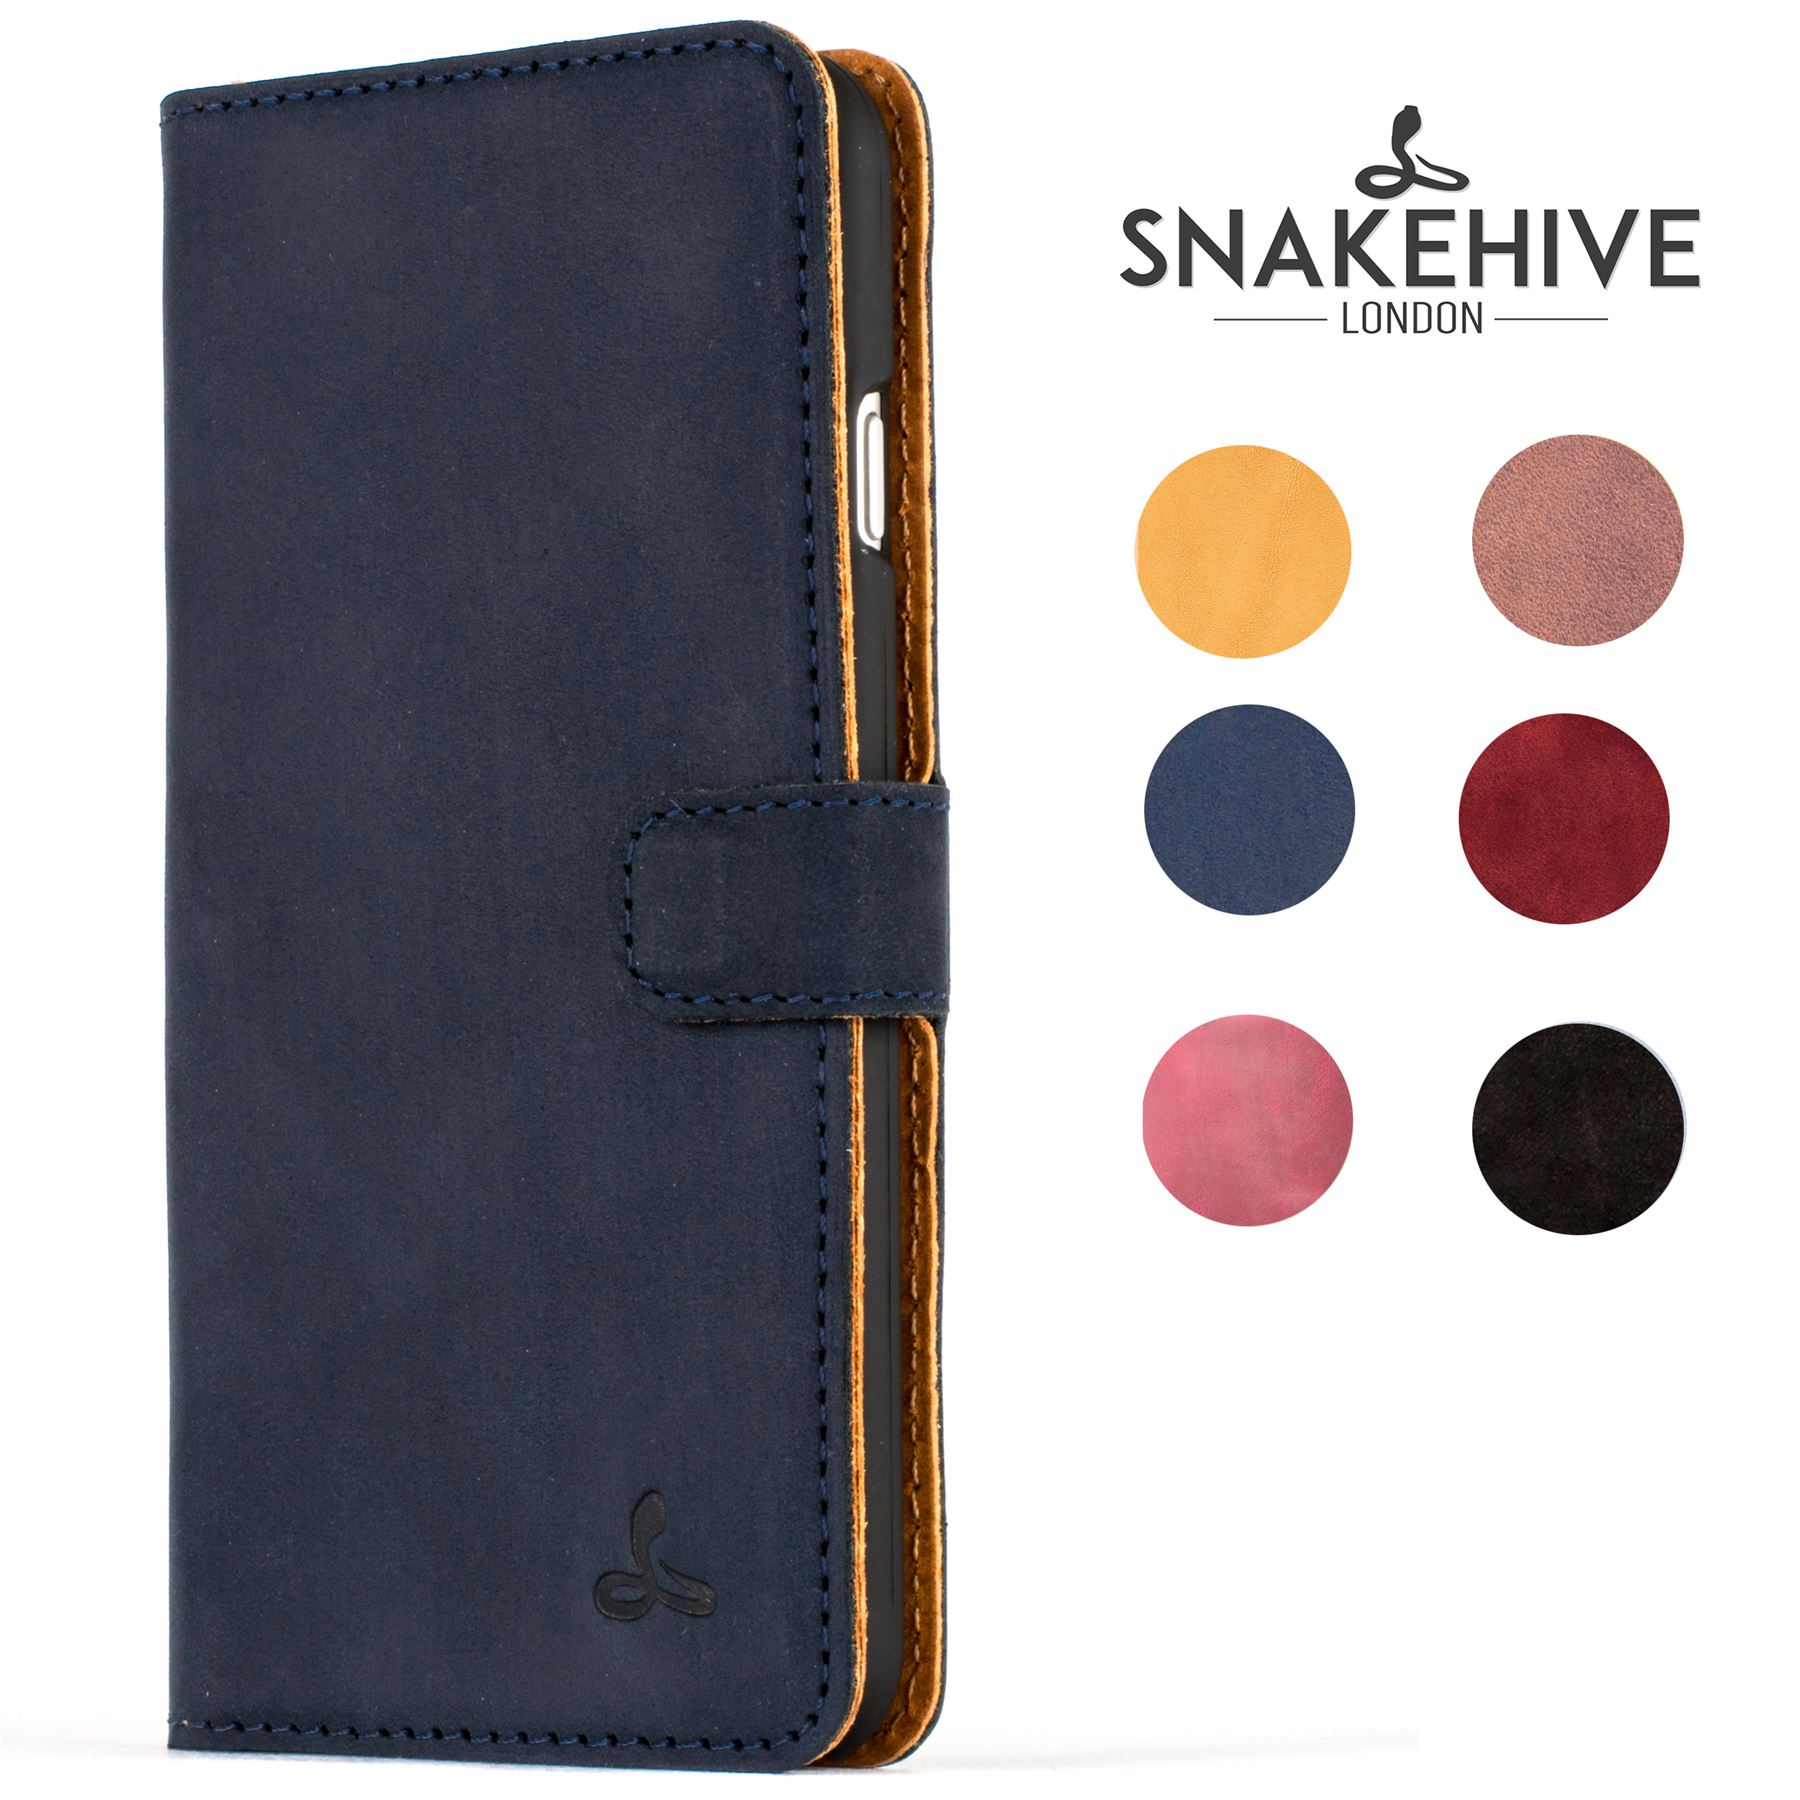 snakehive iphone 6 case